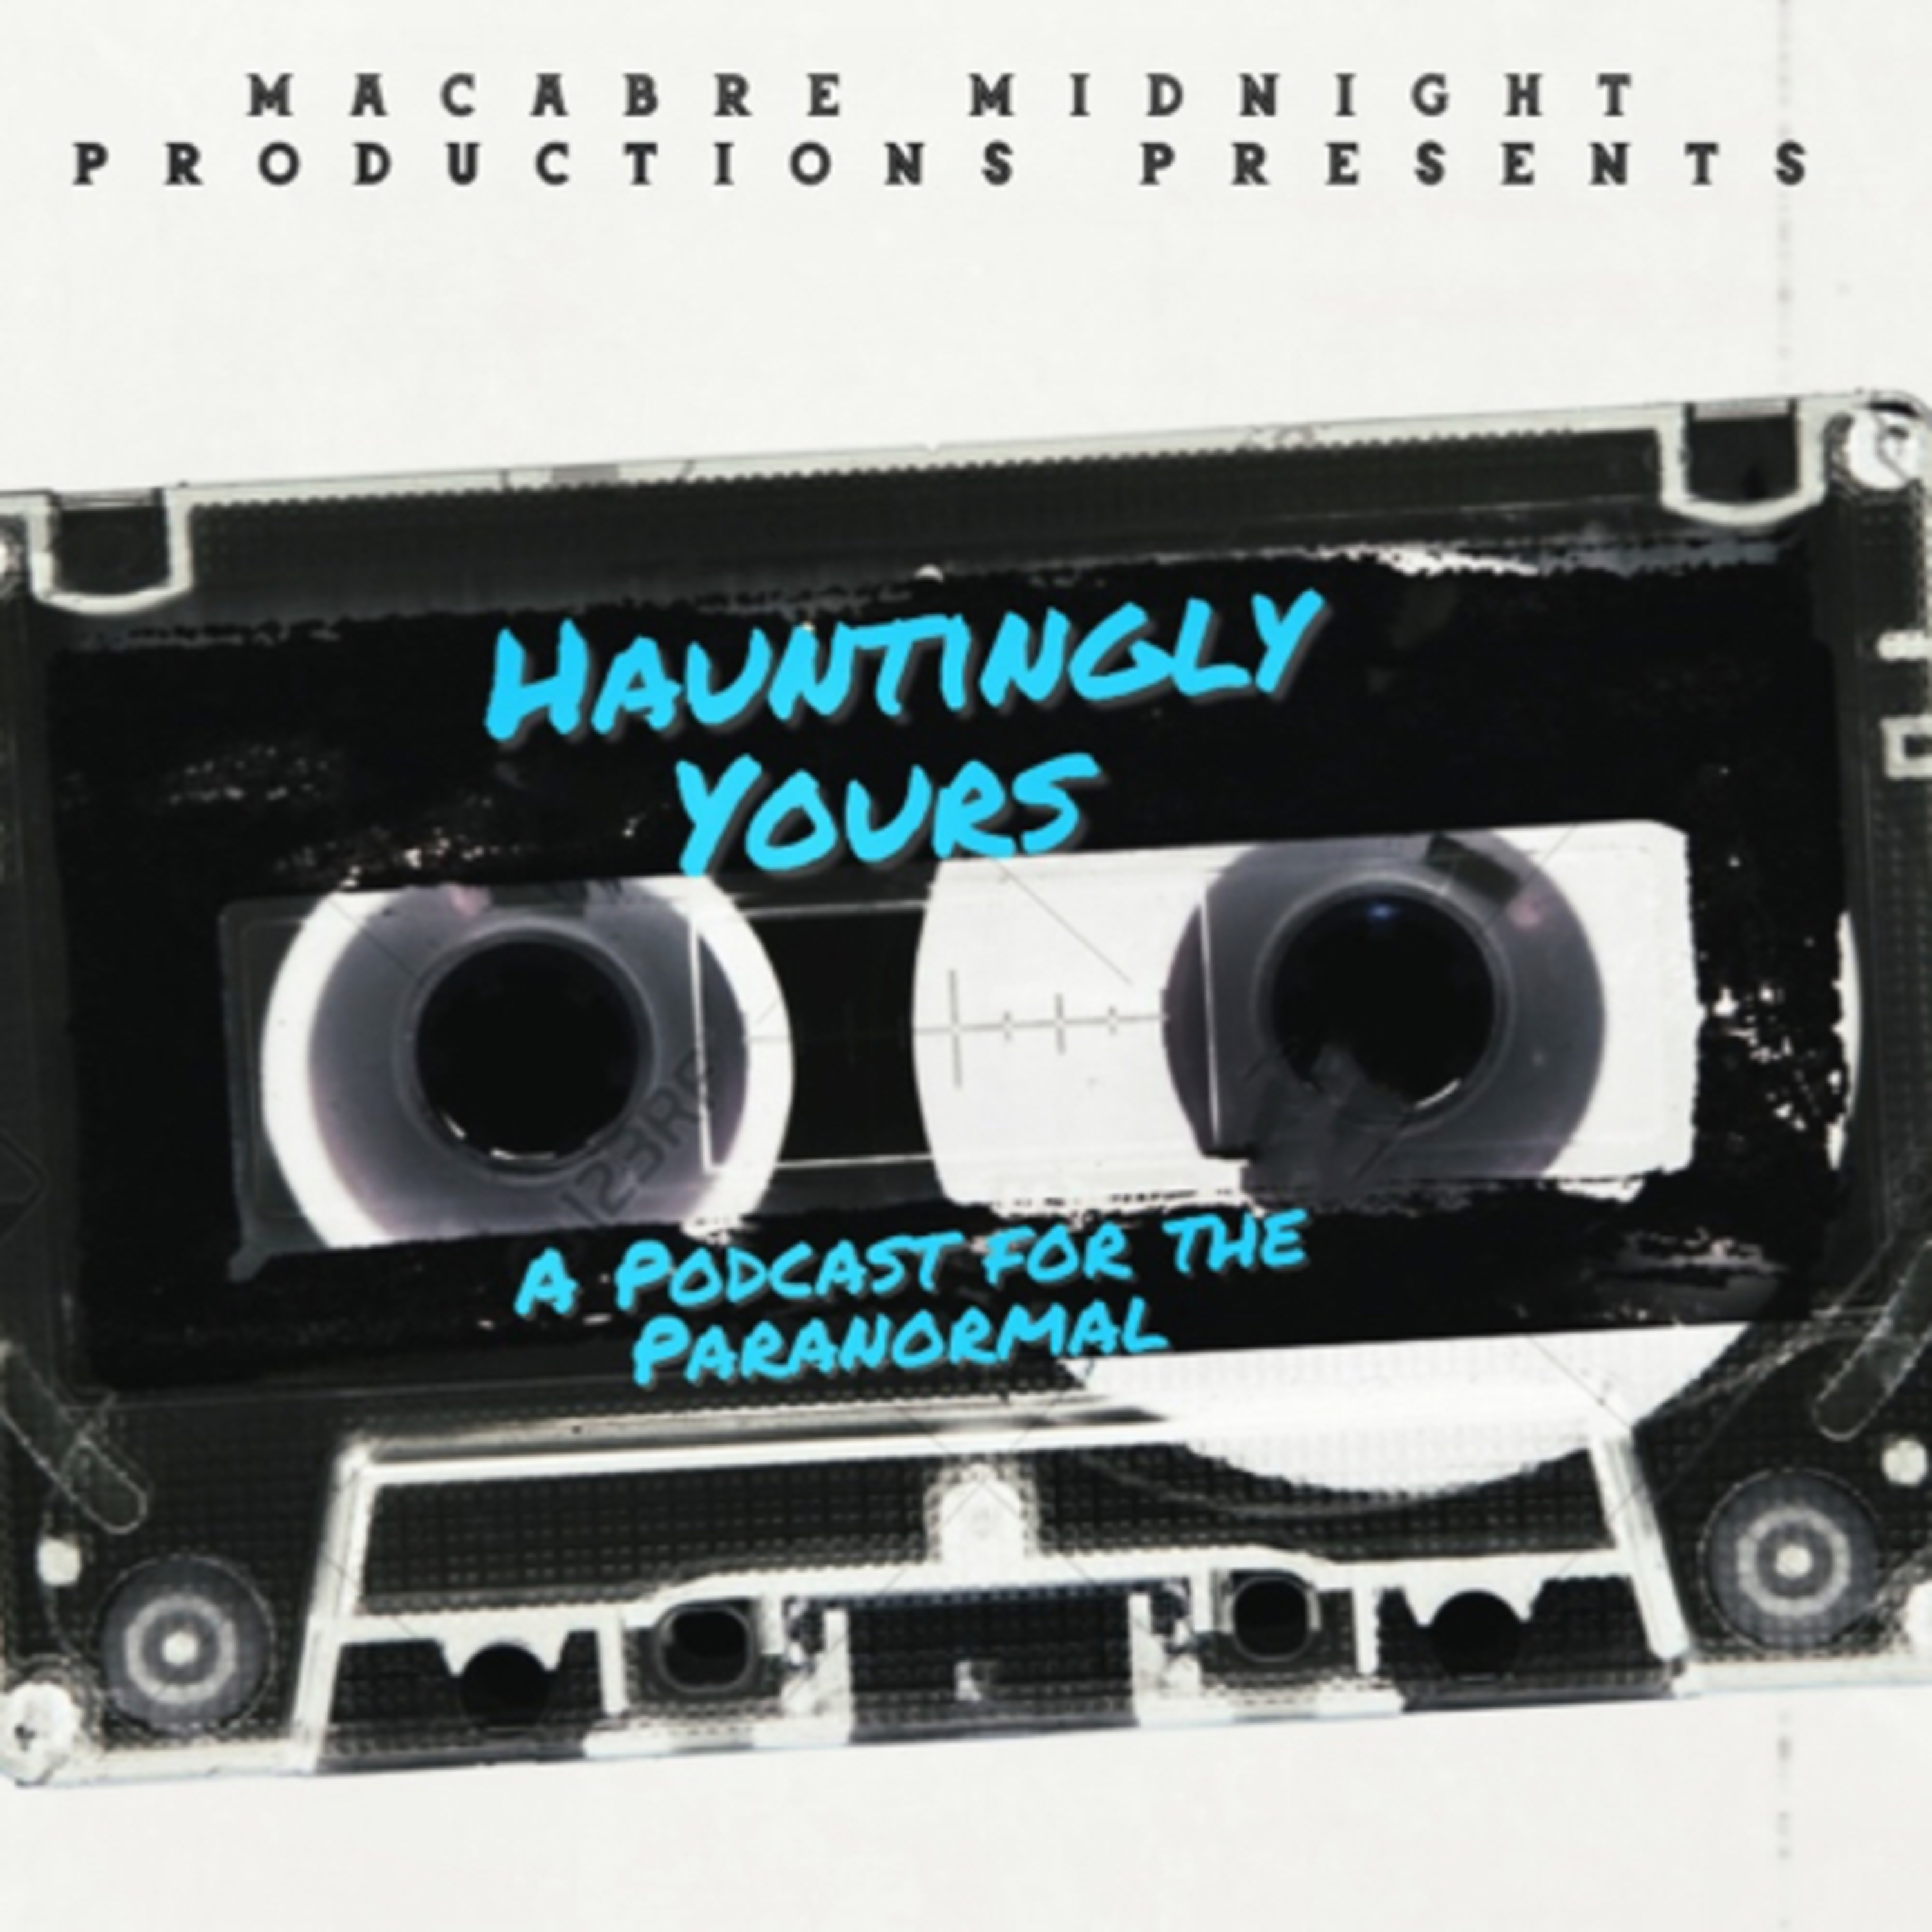 Hauntingly Yours: A Podcast for the Paranormal